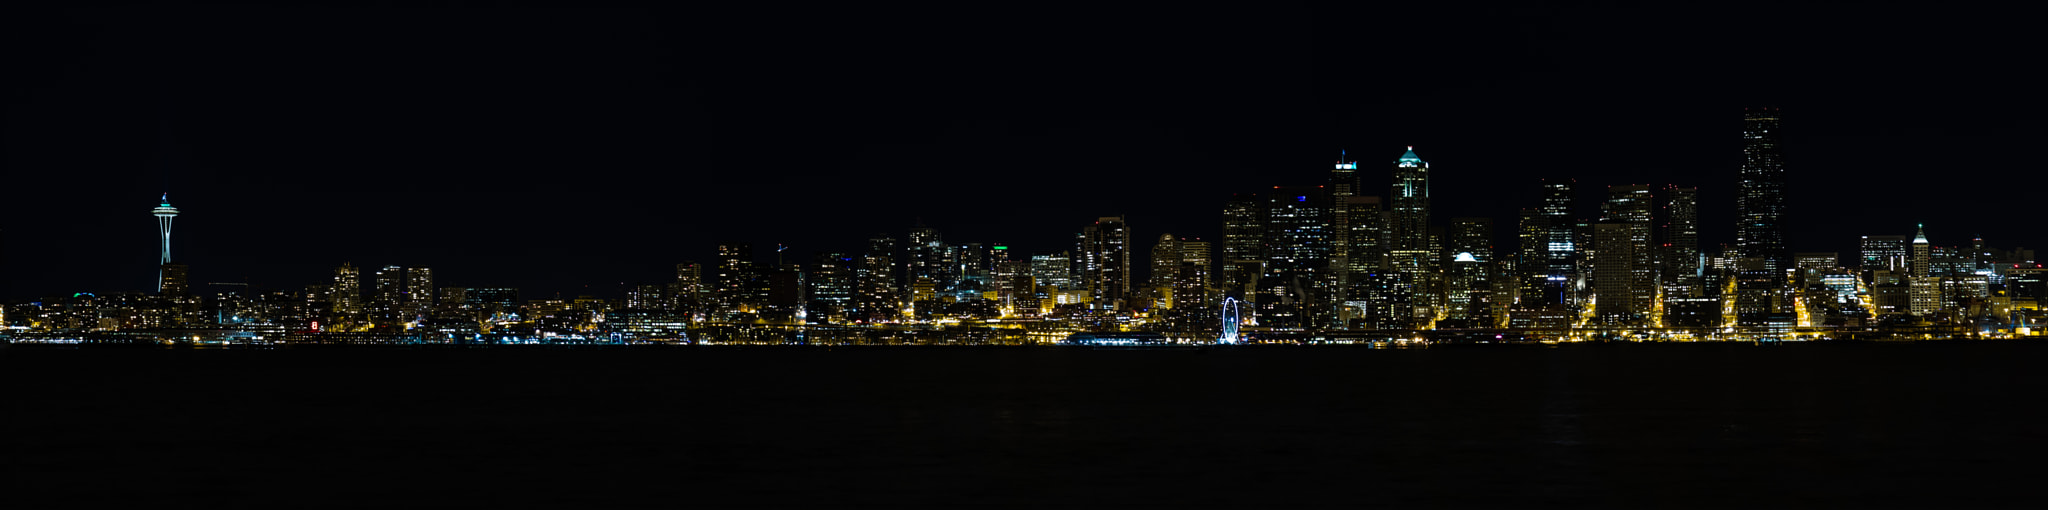 Photograph Seattle Skyline Panorama by Jason Groepper on 500px